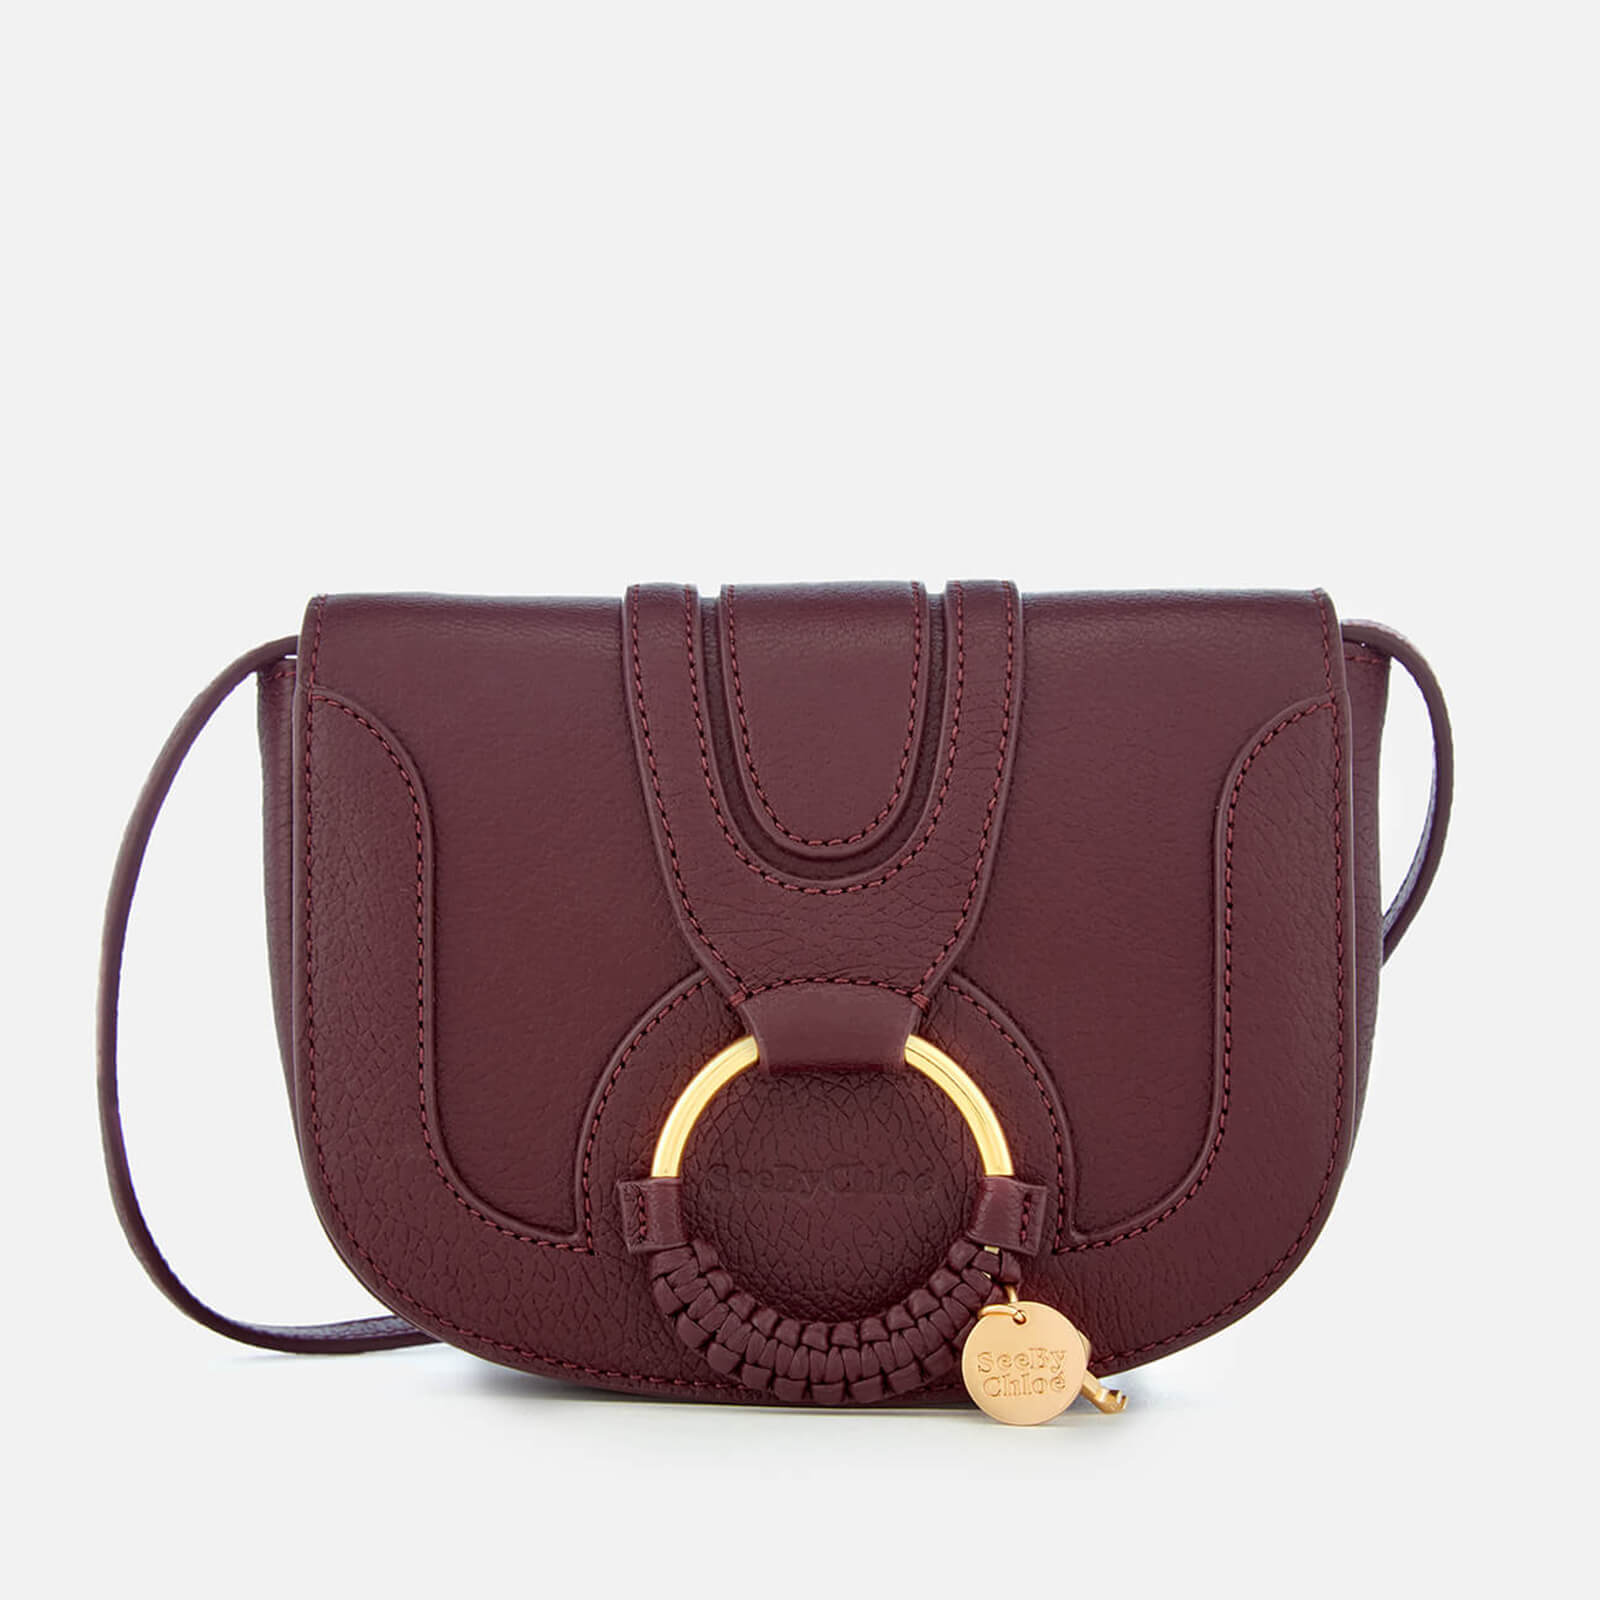 96dfcd92590bd See By Chloé Women s Mini Hana Cross Body Bag - Obscure Purple - Free UK  Delivery over £50